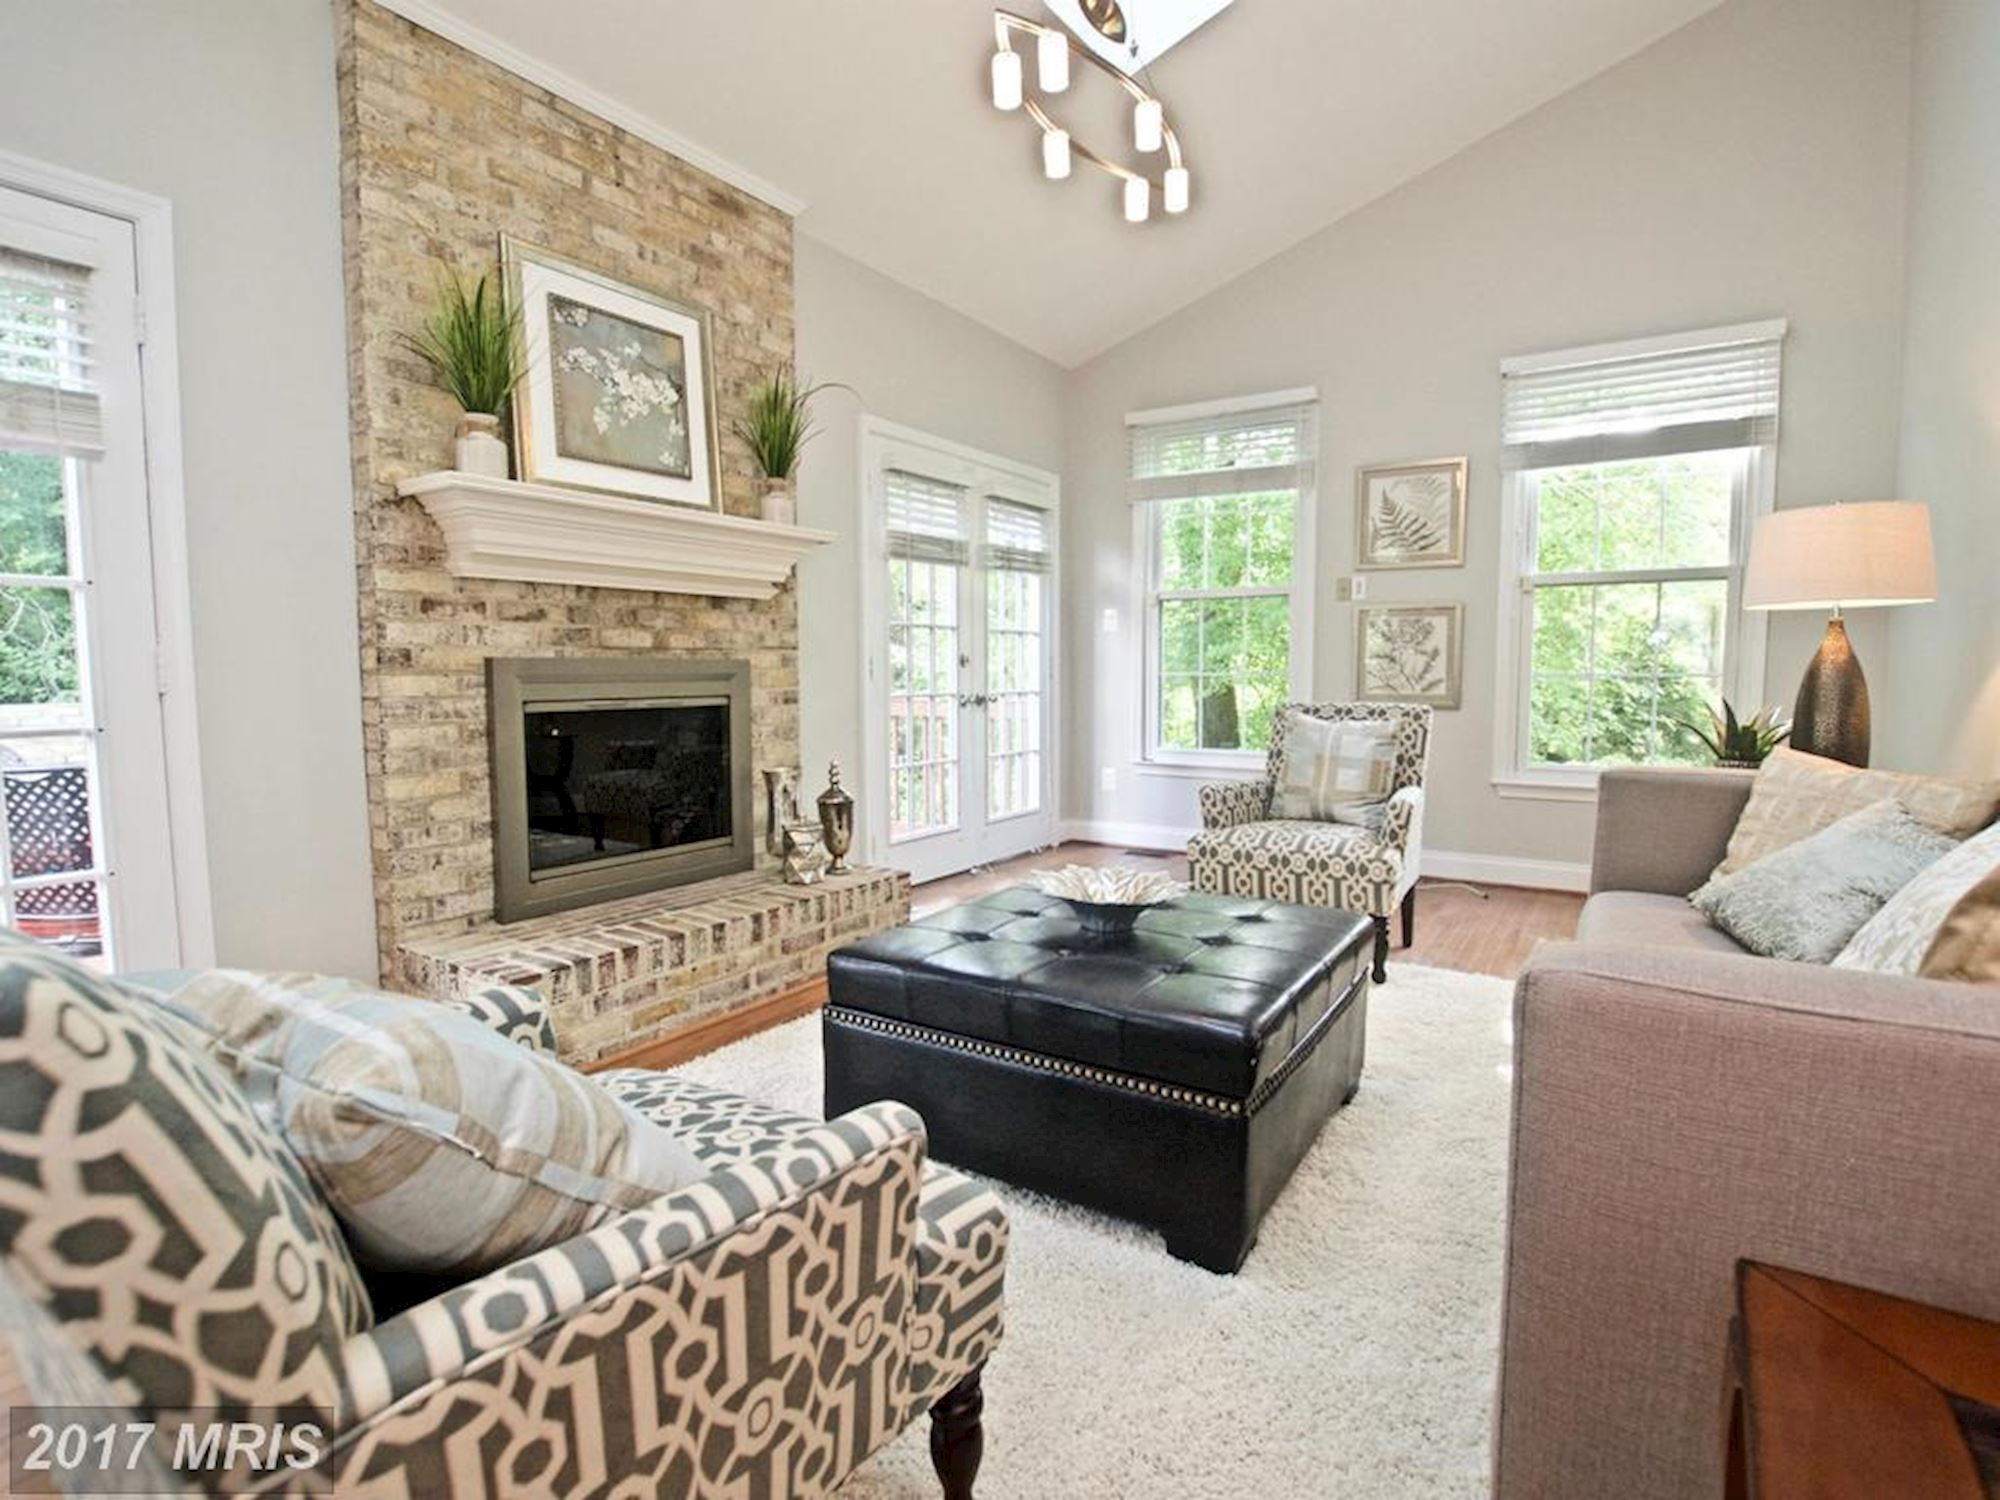 NEW LISTING: Updated Colonial on Corner Lot in Heart of Sleepy Hollow